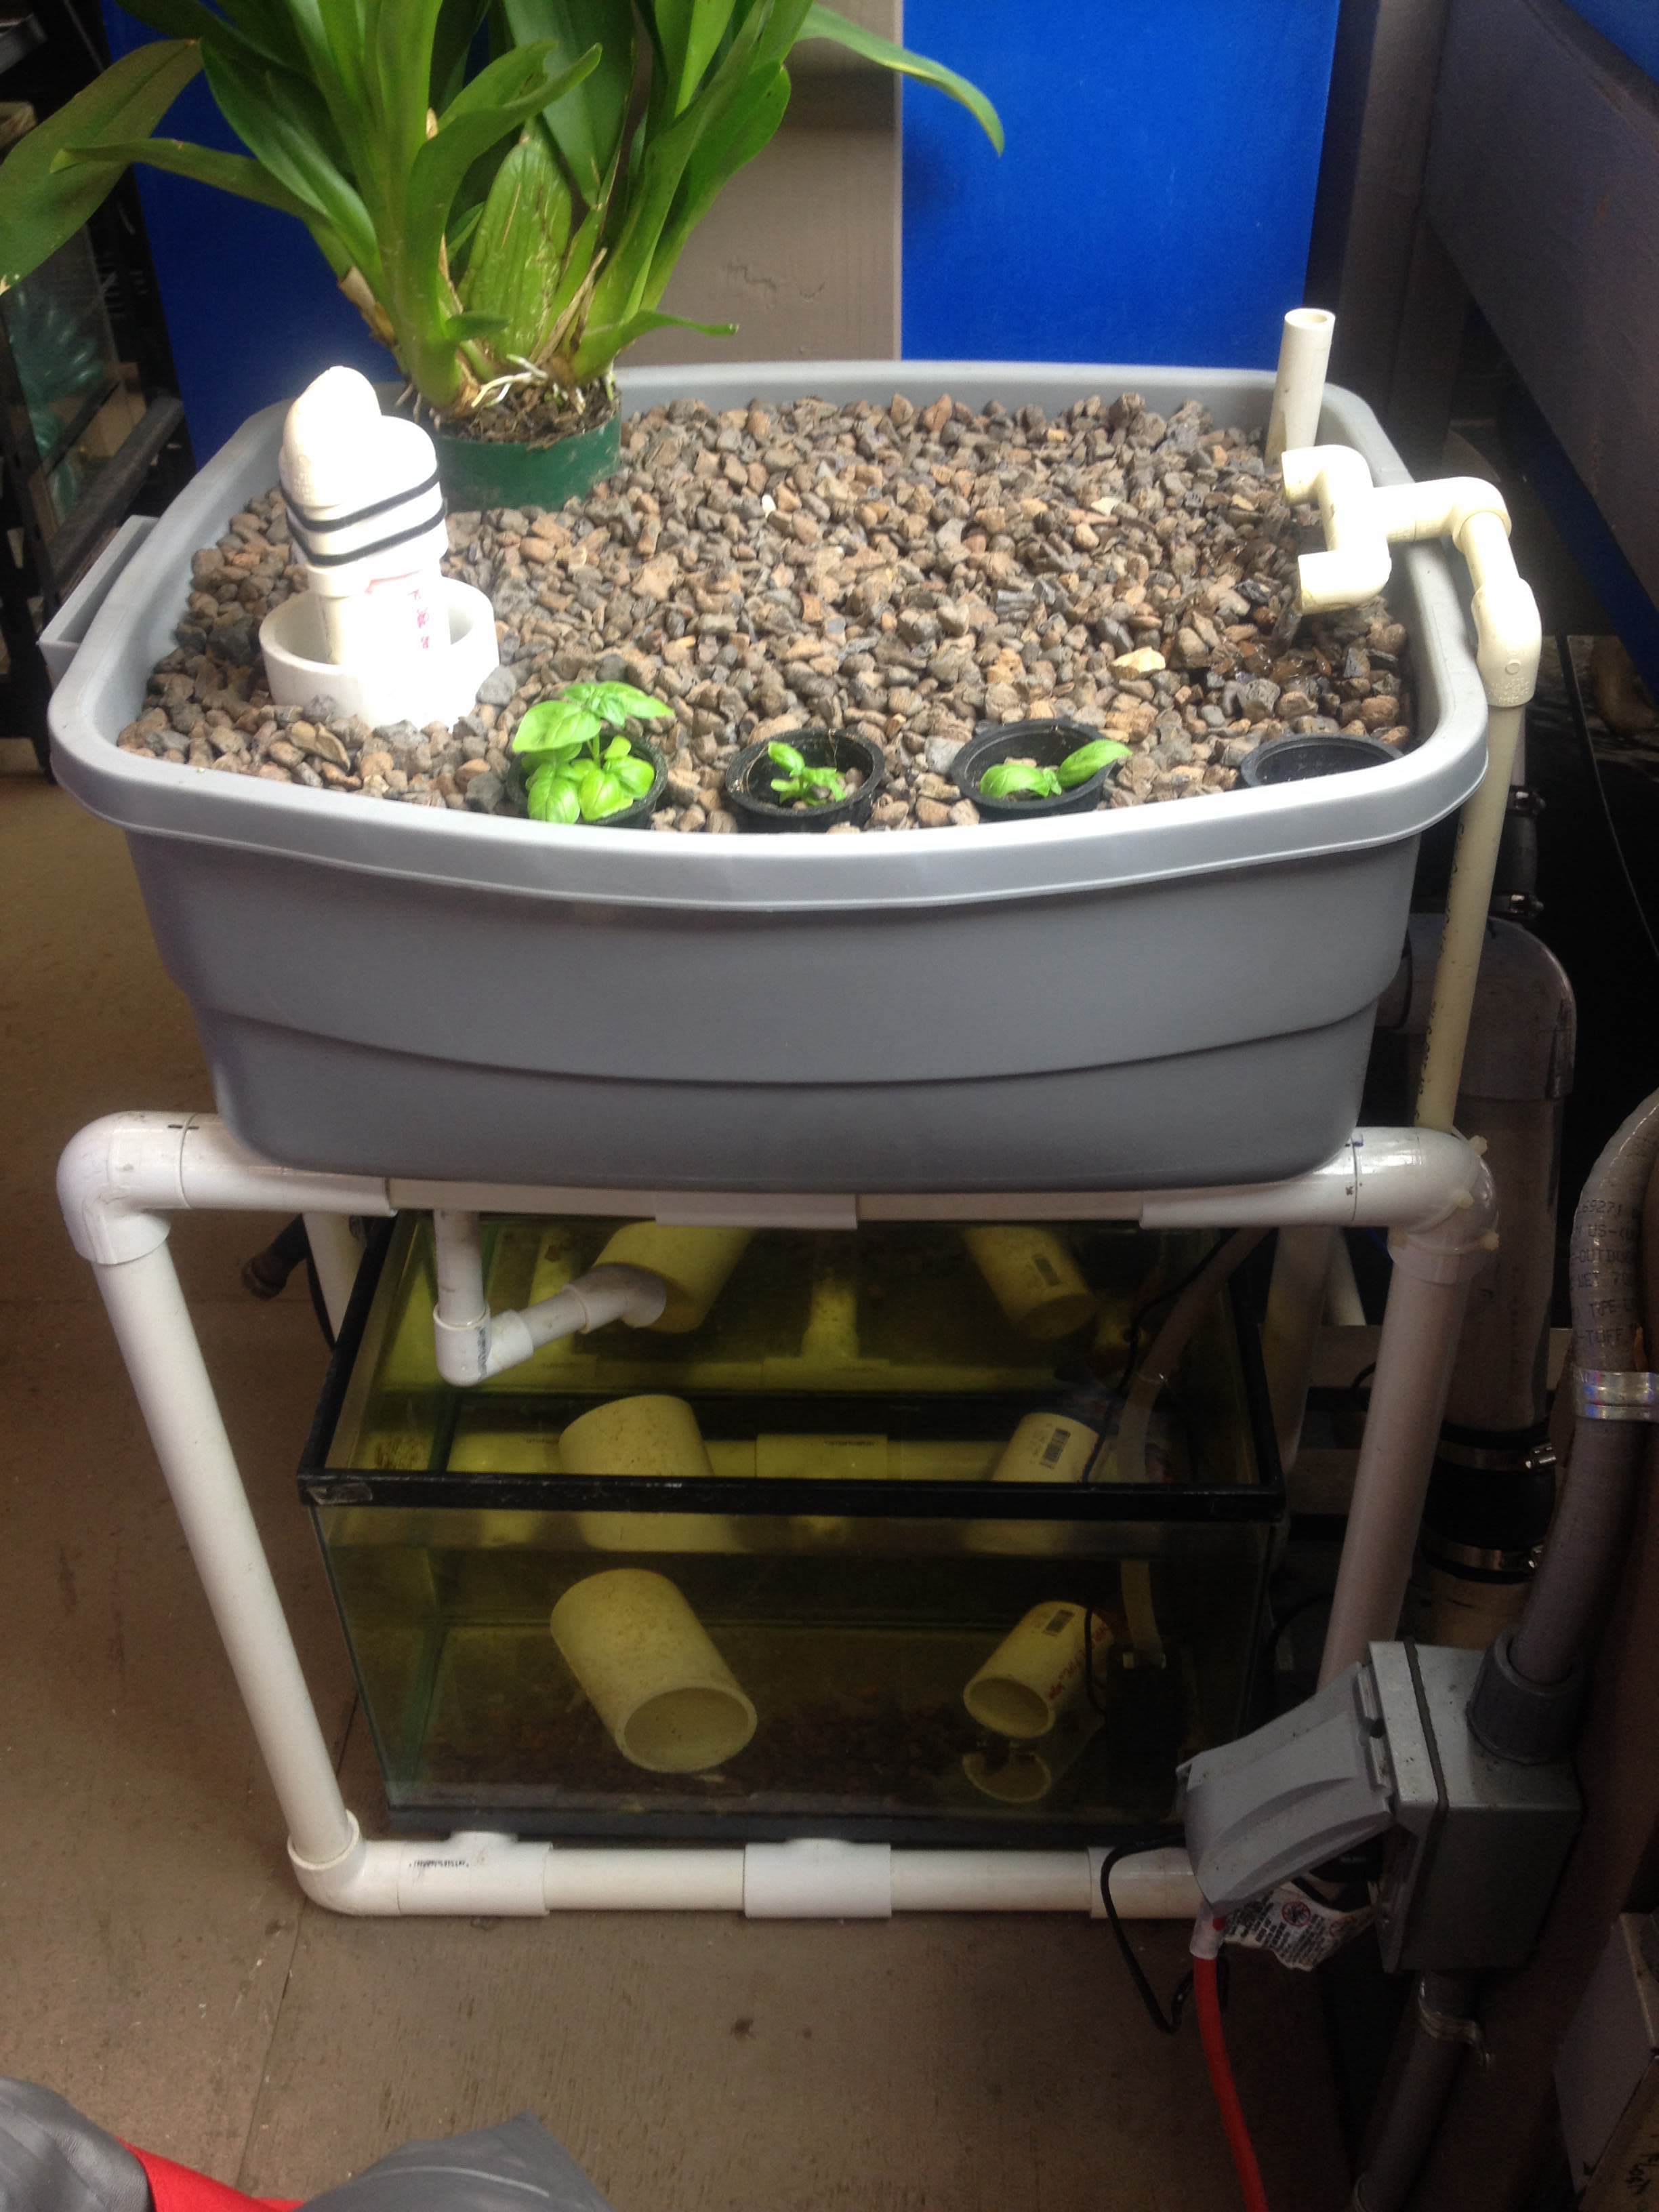 Individual home-sized aquaponic set-up